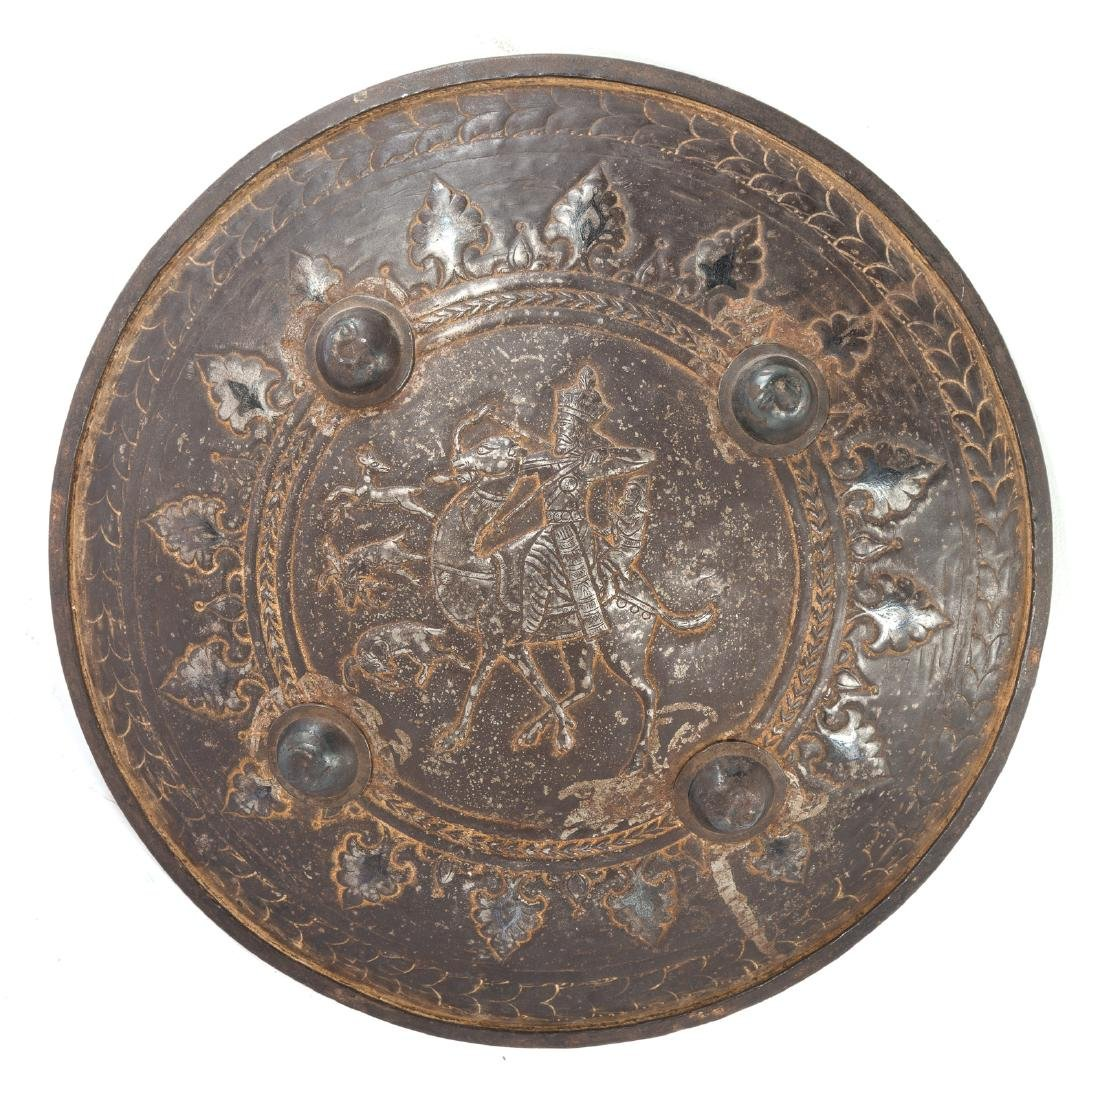 Middle Eastern style metal shield